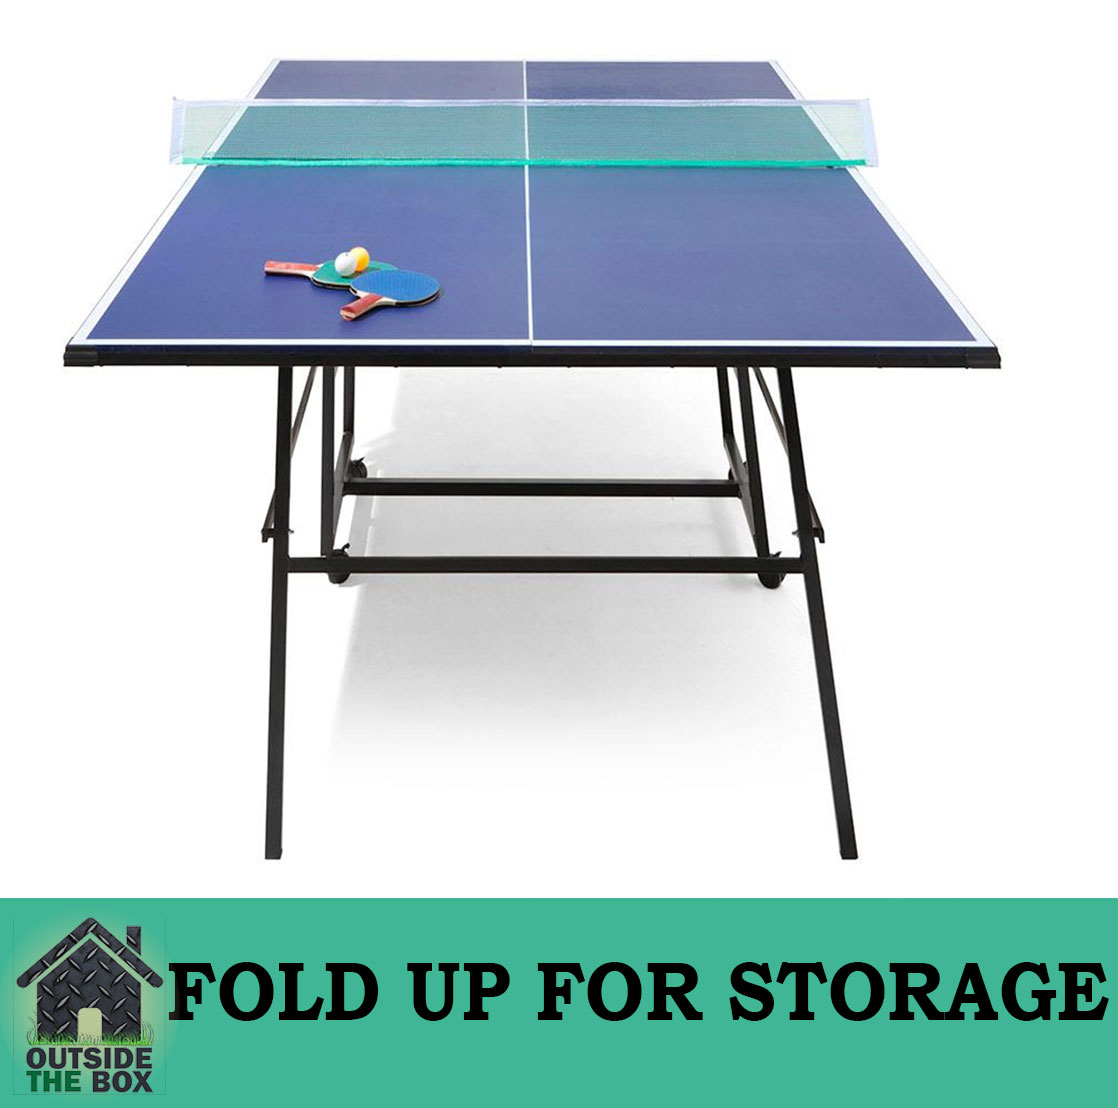 New ITTF Approved Pro Size Fold Up Table Tennis Ping Pong Table 13mm ...